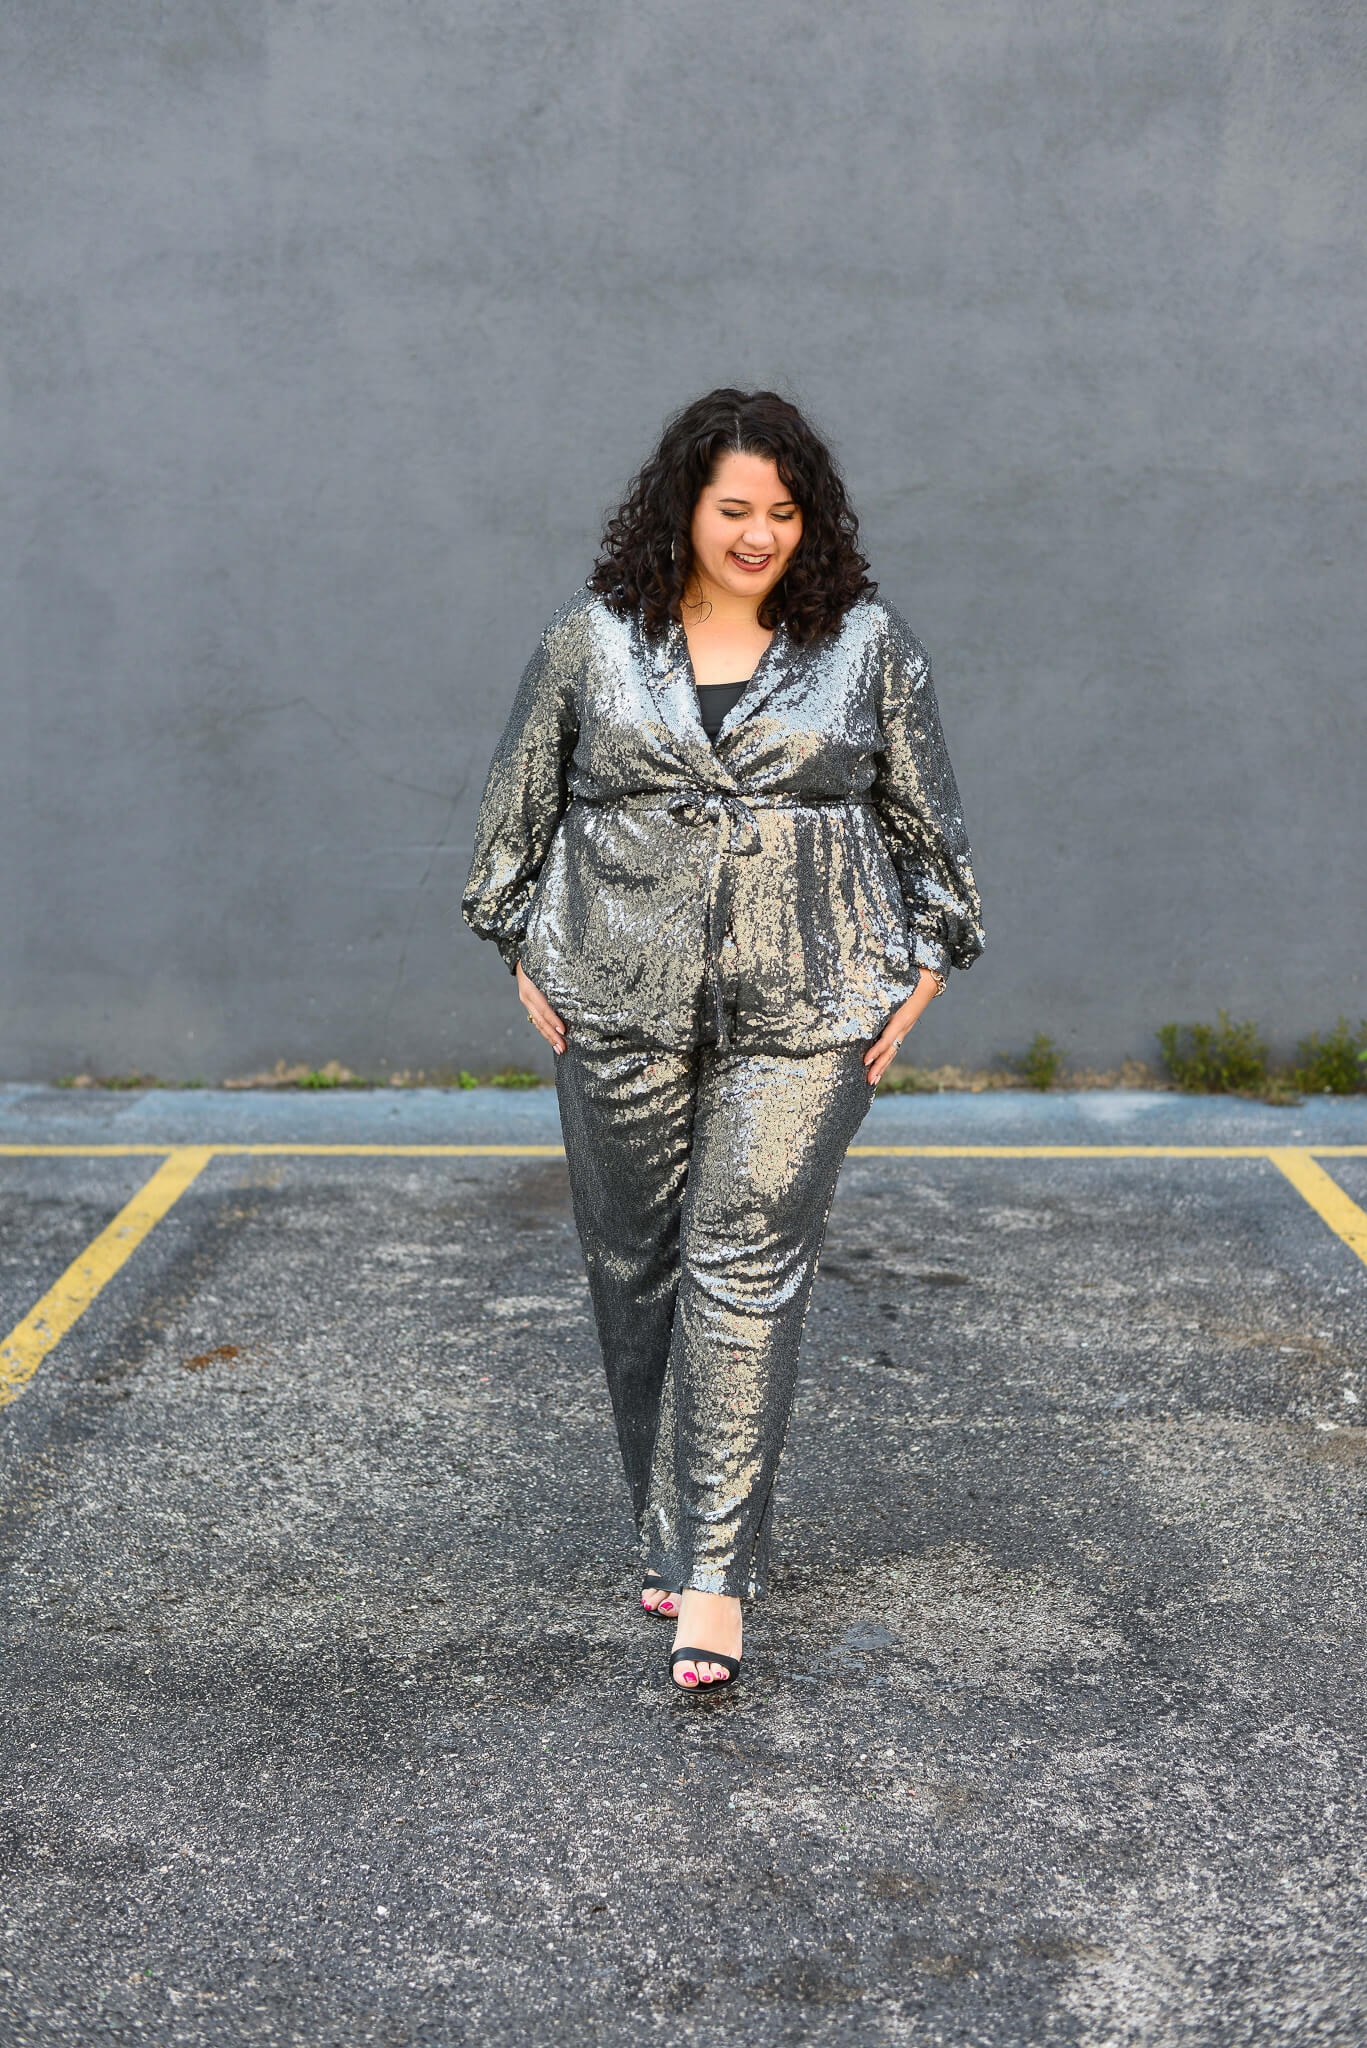 I've rounded up 3 of my favorite NYE party outfit ideas for the plus size woman in today's blog post